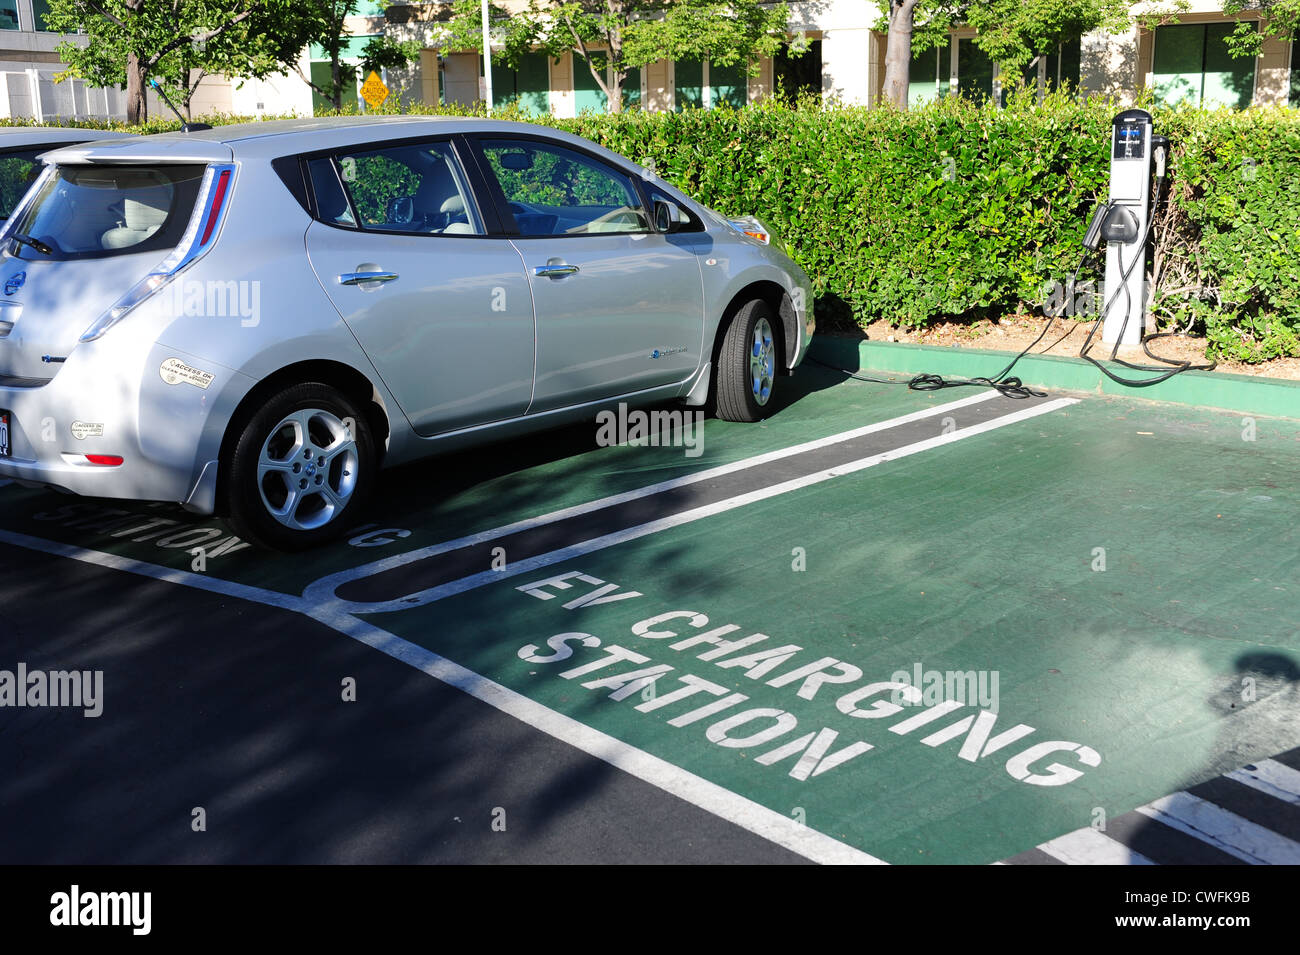 electric-vehicle-charging-station-at-an-office-park-in-cupertino-california-CWFK9B.jpg